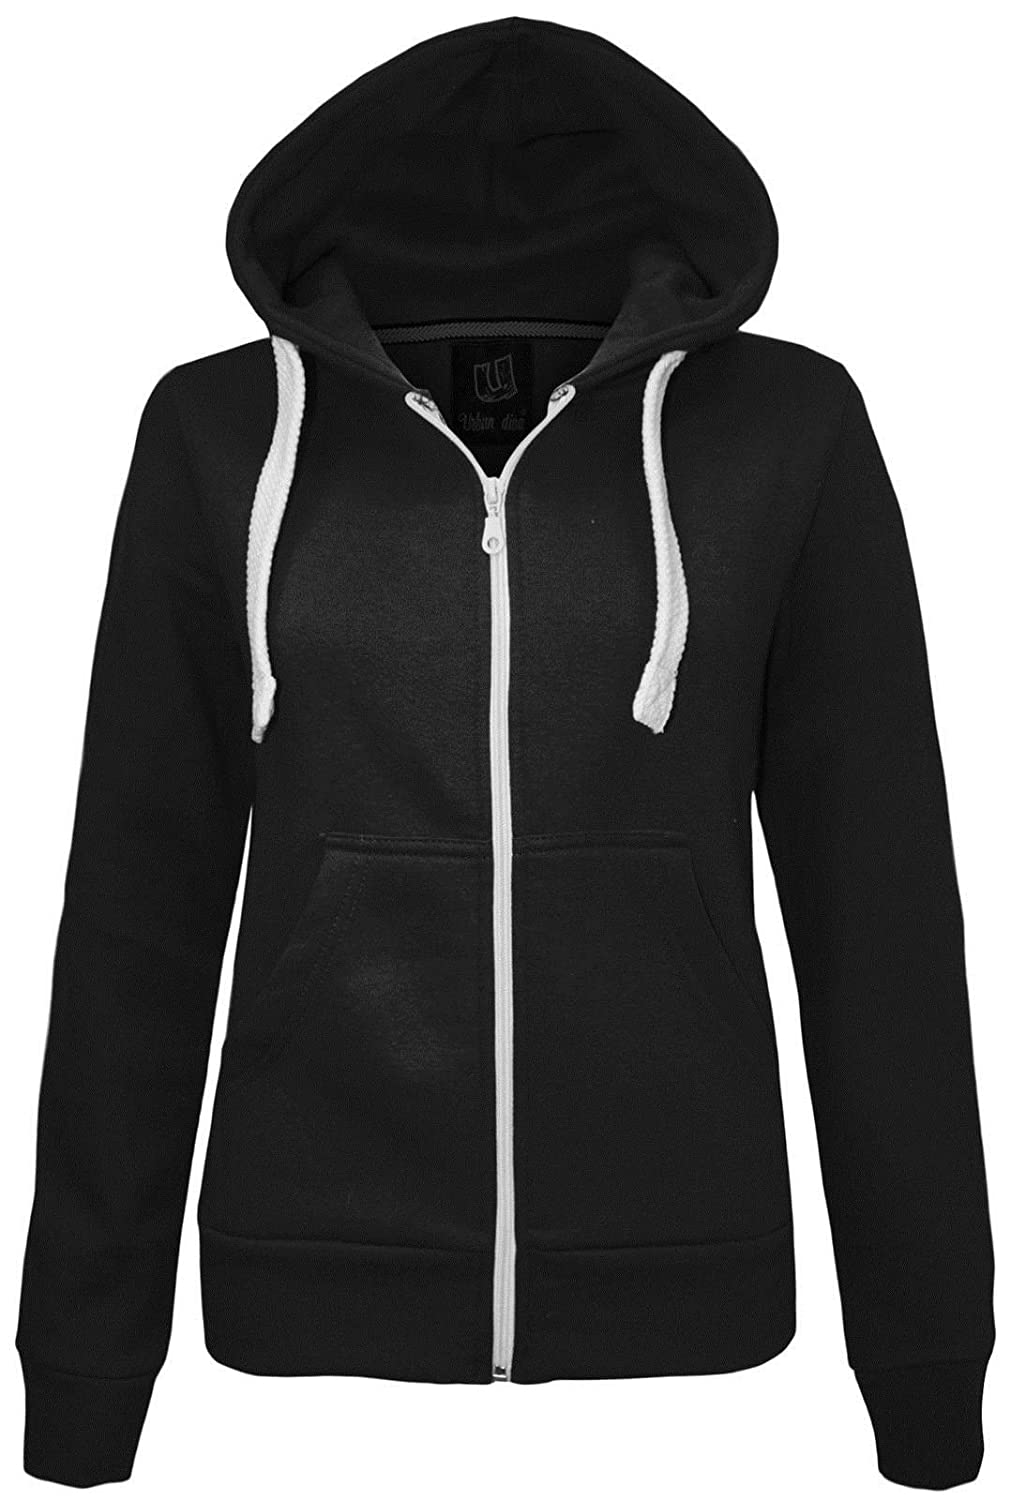 Hoodies & Sweatshirts for Women. Abercrombie & Fitch hoodies and sweatshirts are the softest, most comfortable styles you'll ever wear. Crafted from our signature fleece, they're so soft you have to feel it to believe it.